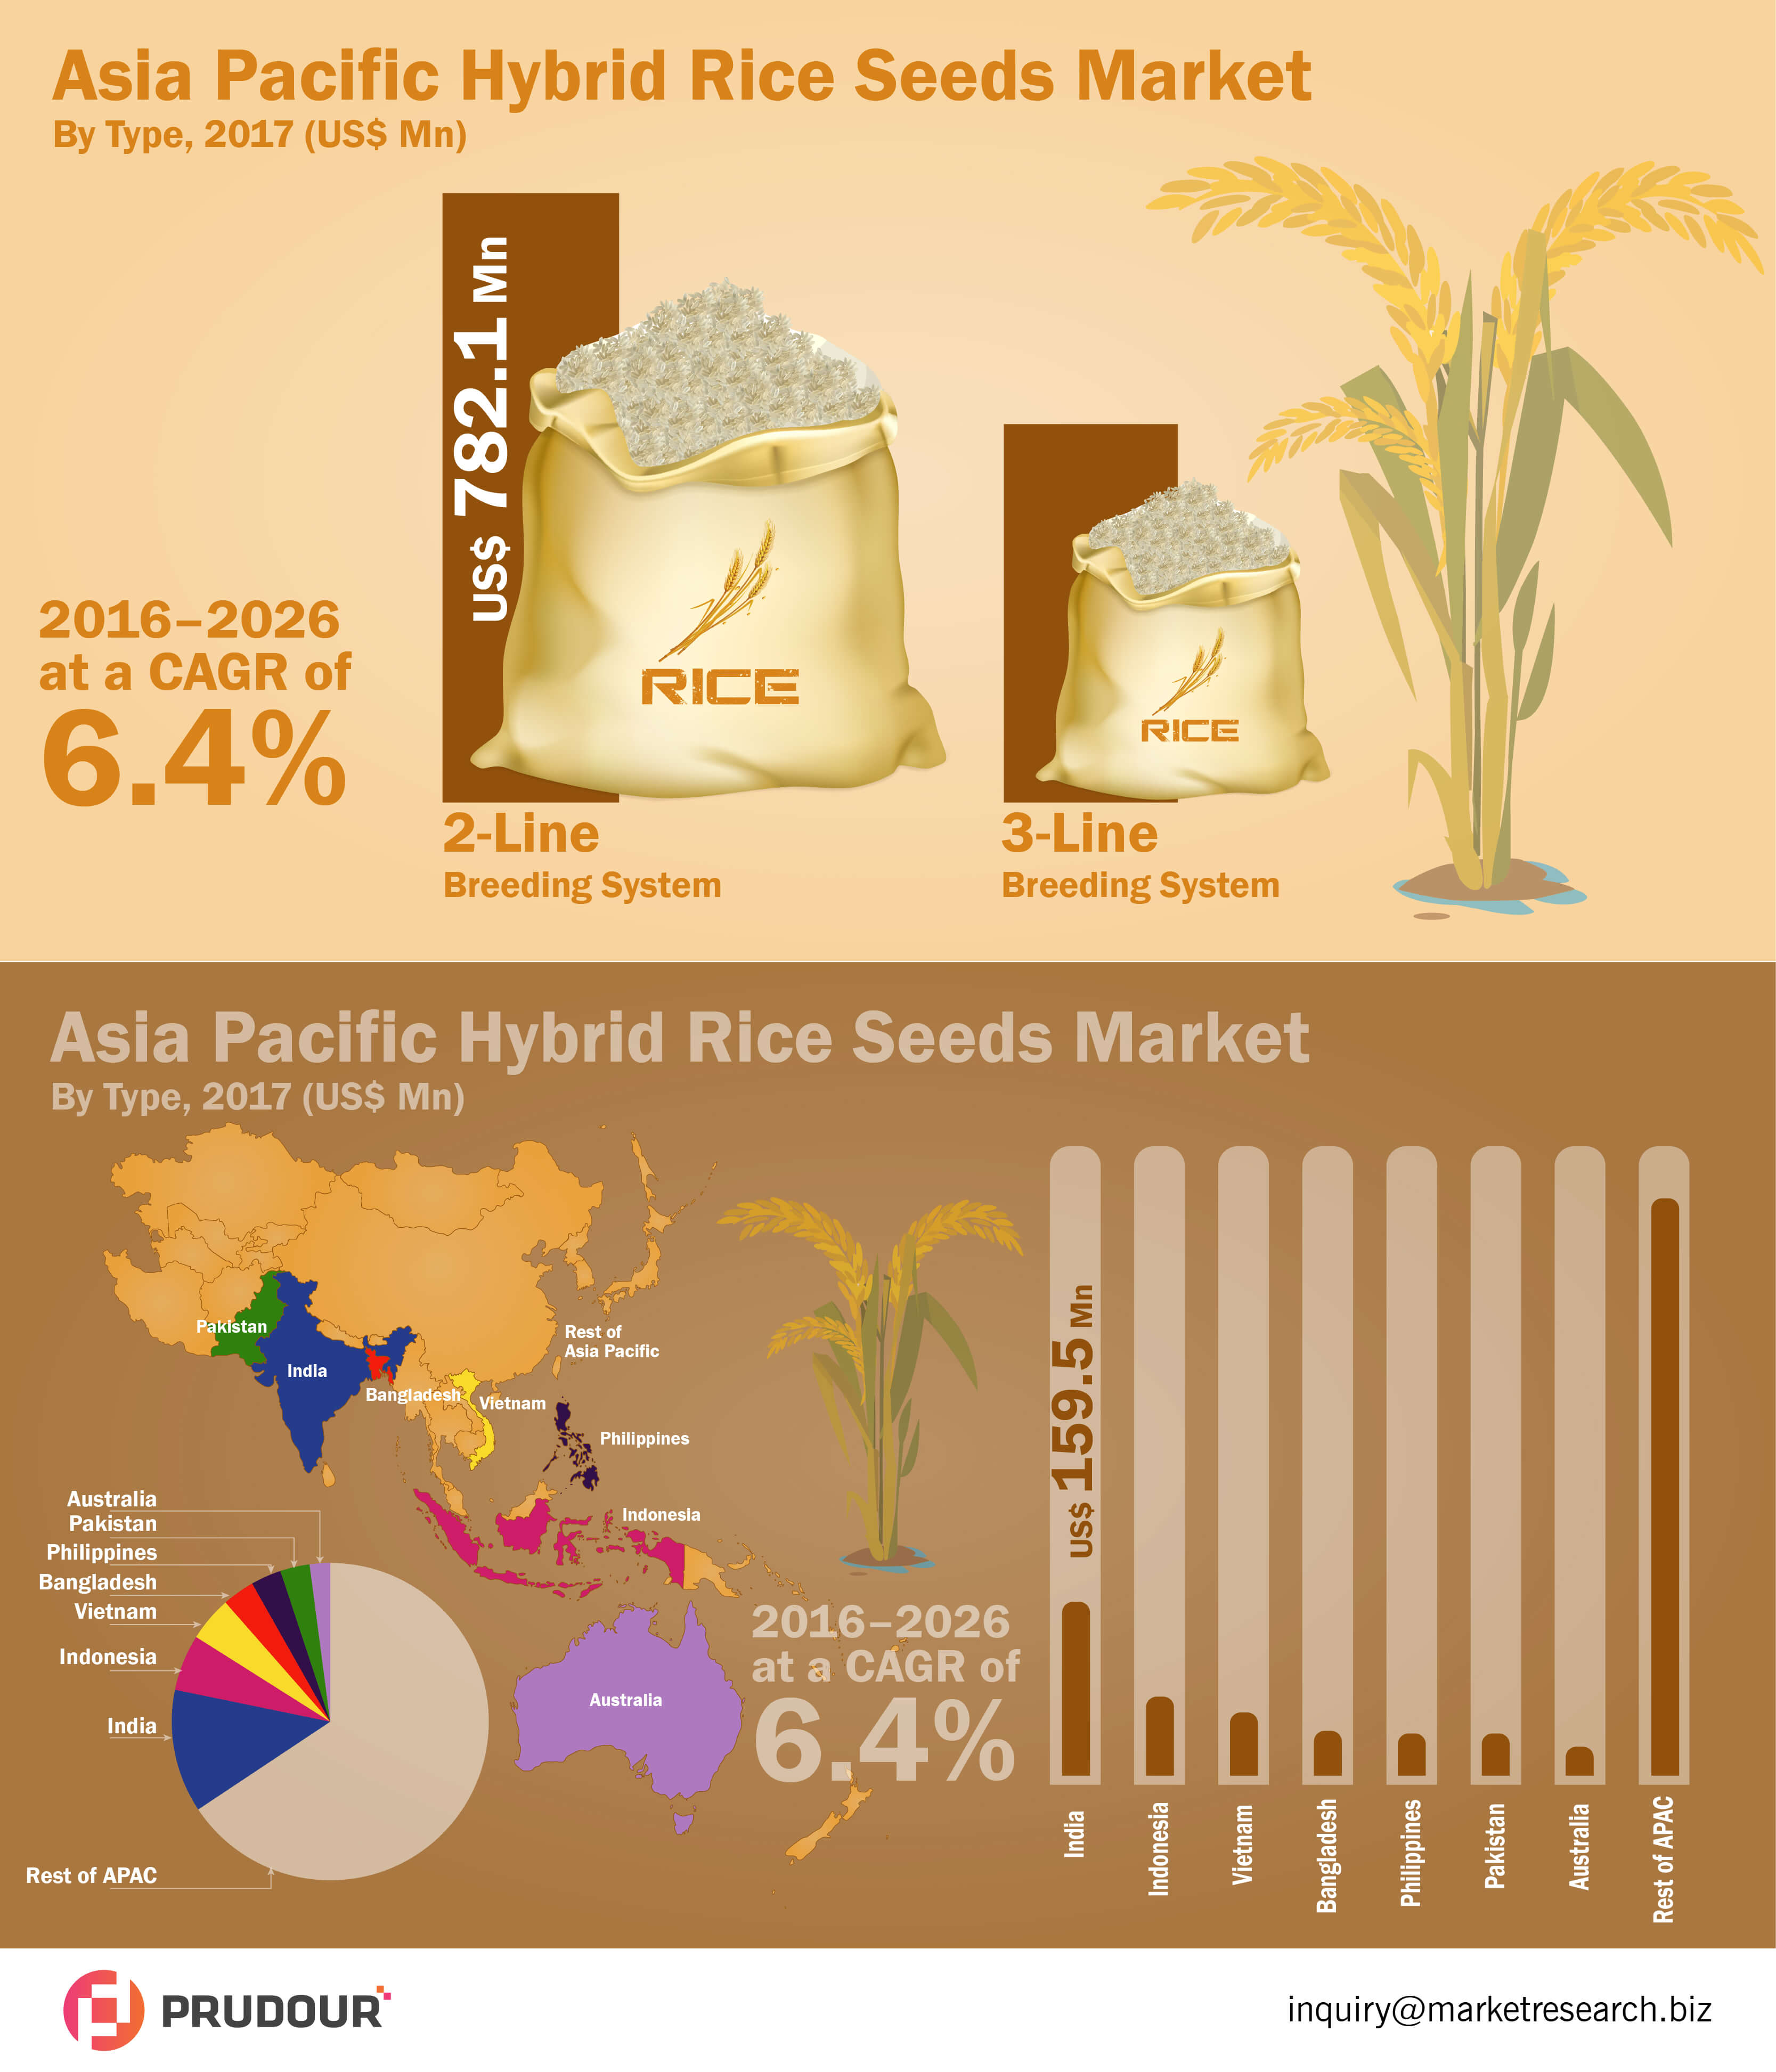 asia-pacific-hybrid-rice-seed-market-infographic-plaza